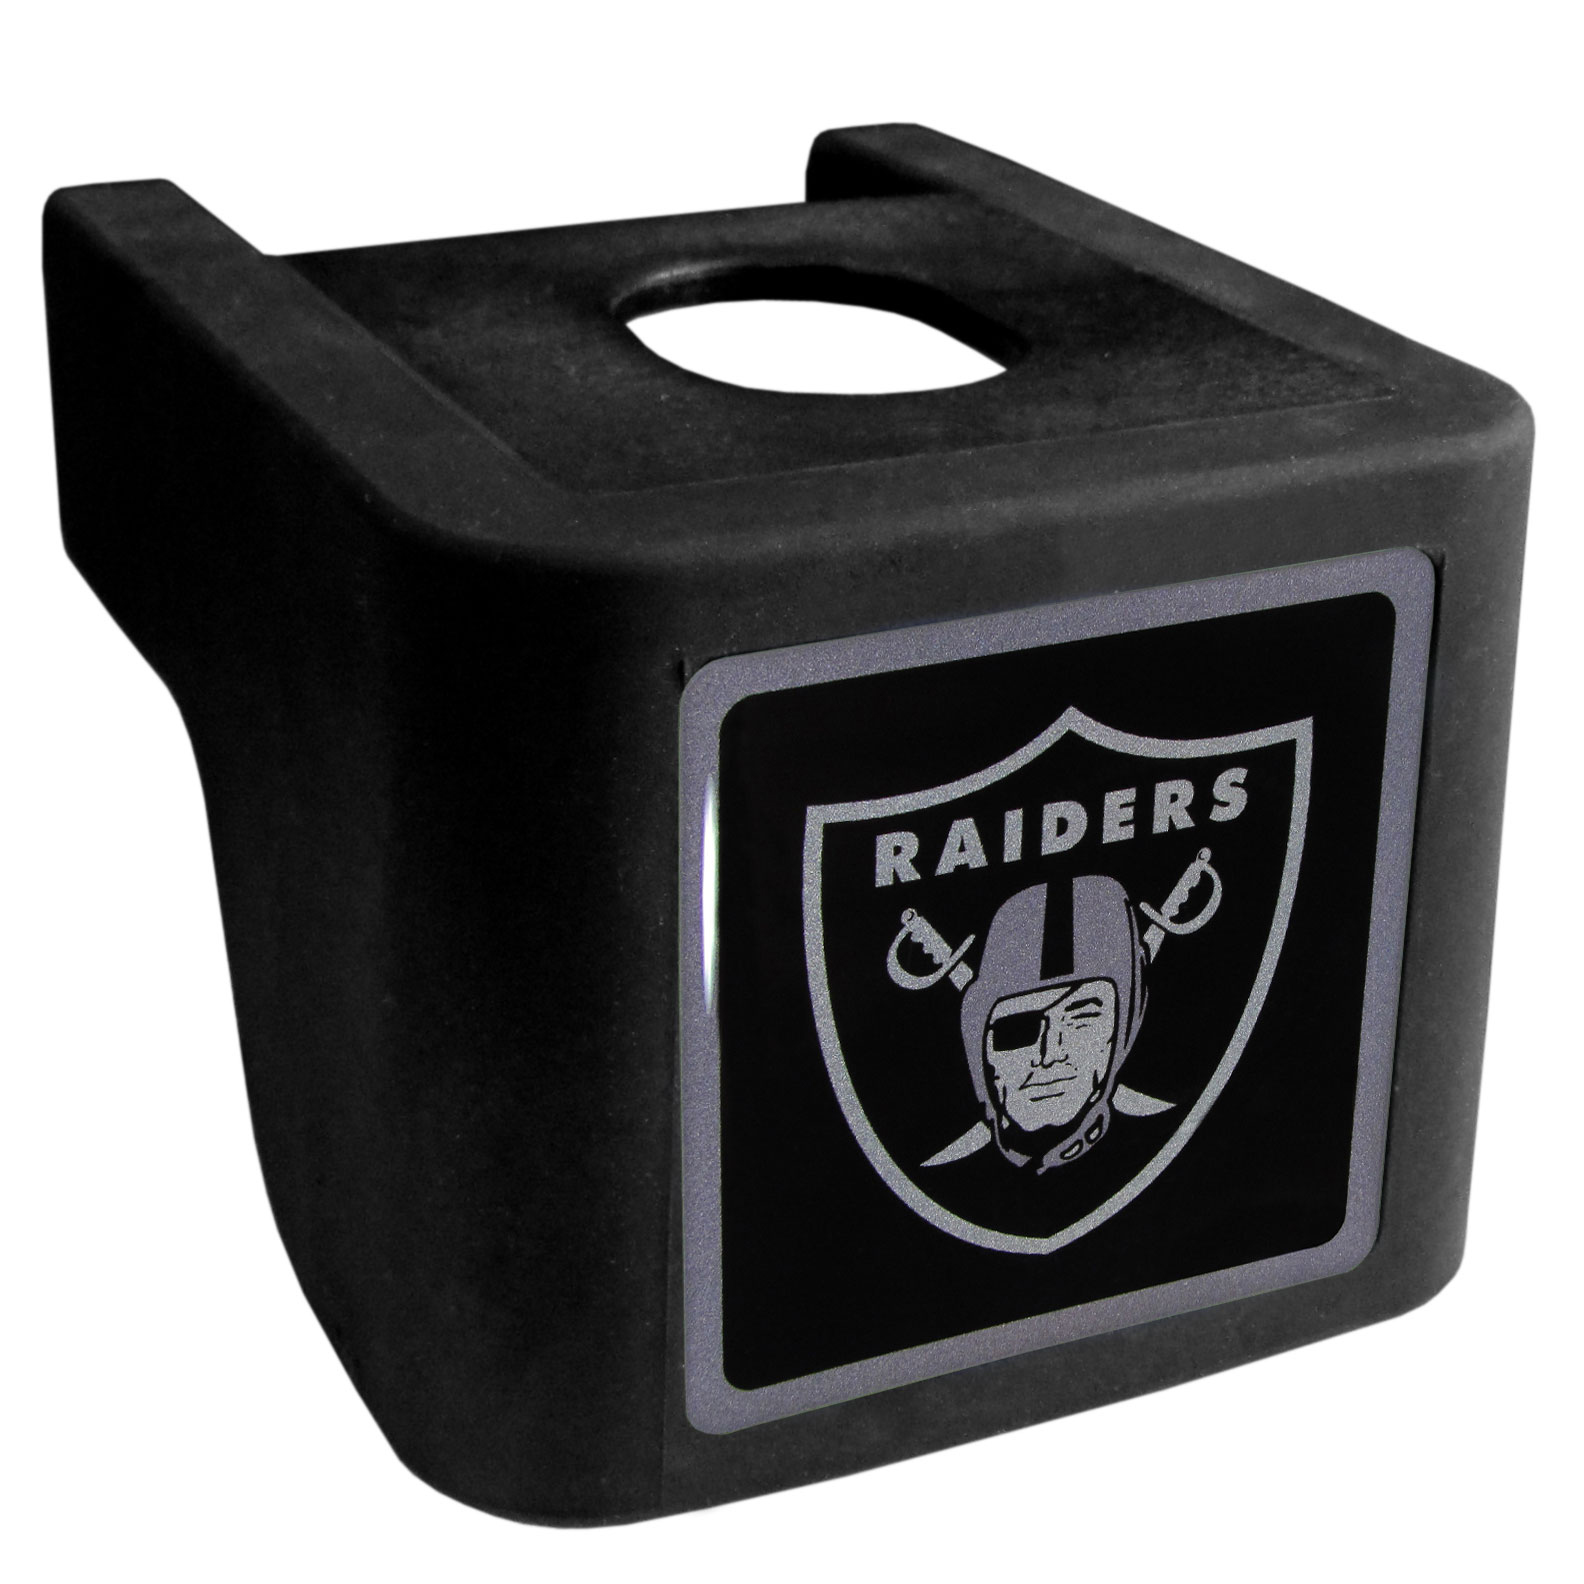 Oakland Raiders Shin Shield Hitch Cover - This unique hitch cover features a large Oakland Raiders logo. If you have ever hooked up a trailer or boat your have probably smashed your shins on the ball hitch a few times. This revolutionary shin shield hitch cover provides your much abused shins with the protection they deserve! The tough rubber hitch is rated to work with Class V hitch receivers hauling up to 17,000 gross trailer weight and 1,700 tongue weight allowing you to leave it on while hauling.